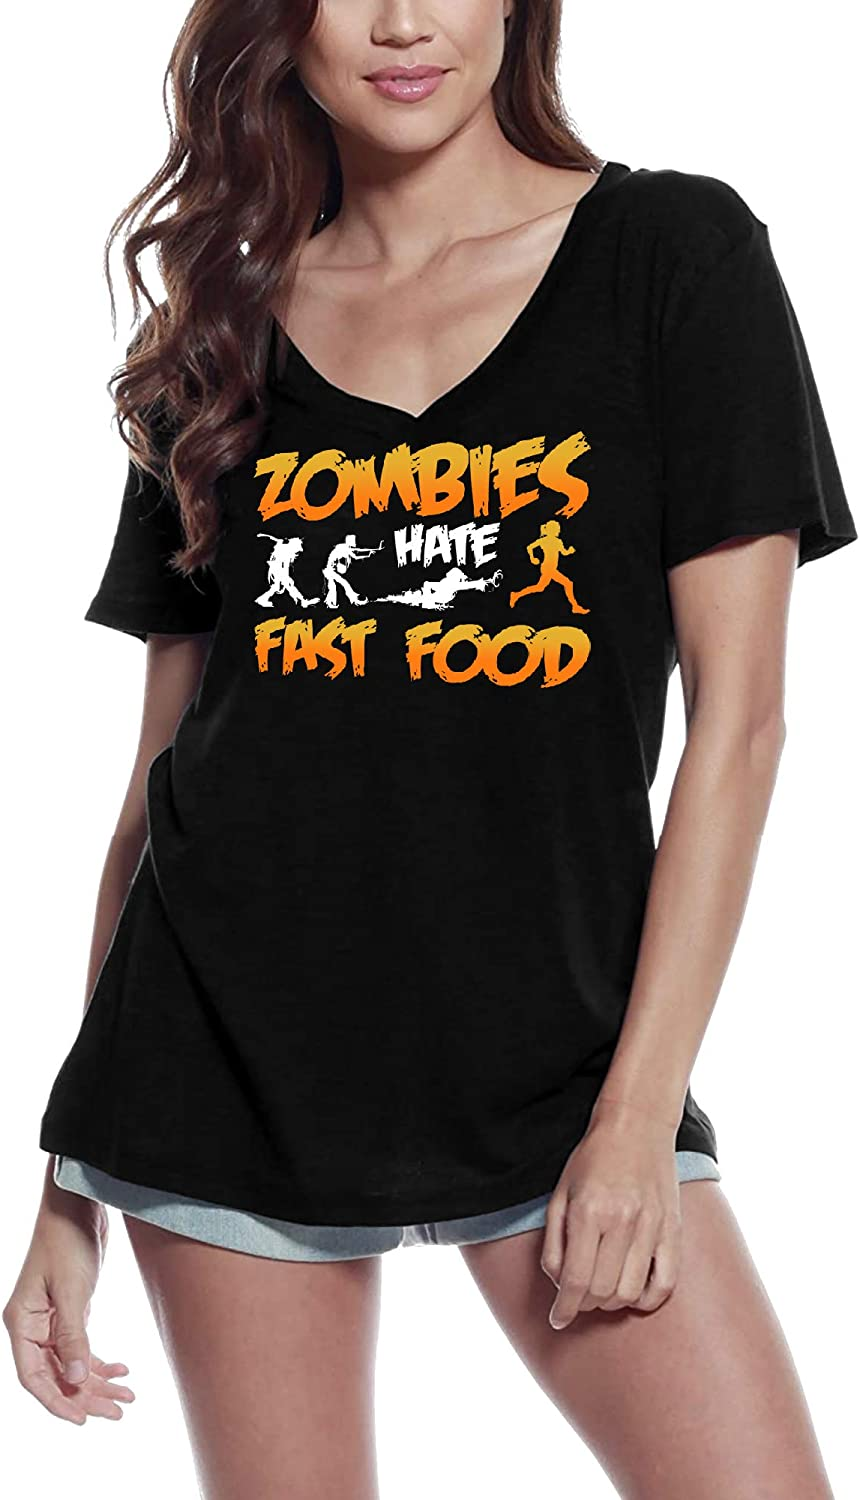 Ultrabasic Women's T-Shirt Zombies Hates Fast Food - Funny Vintage Tee Shirt